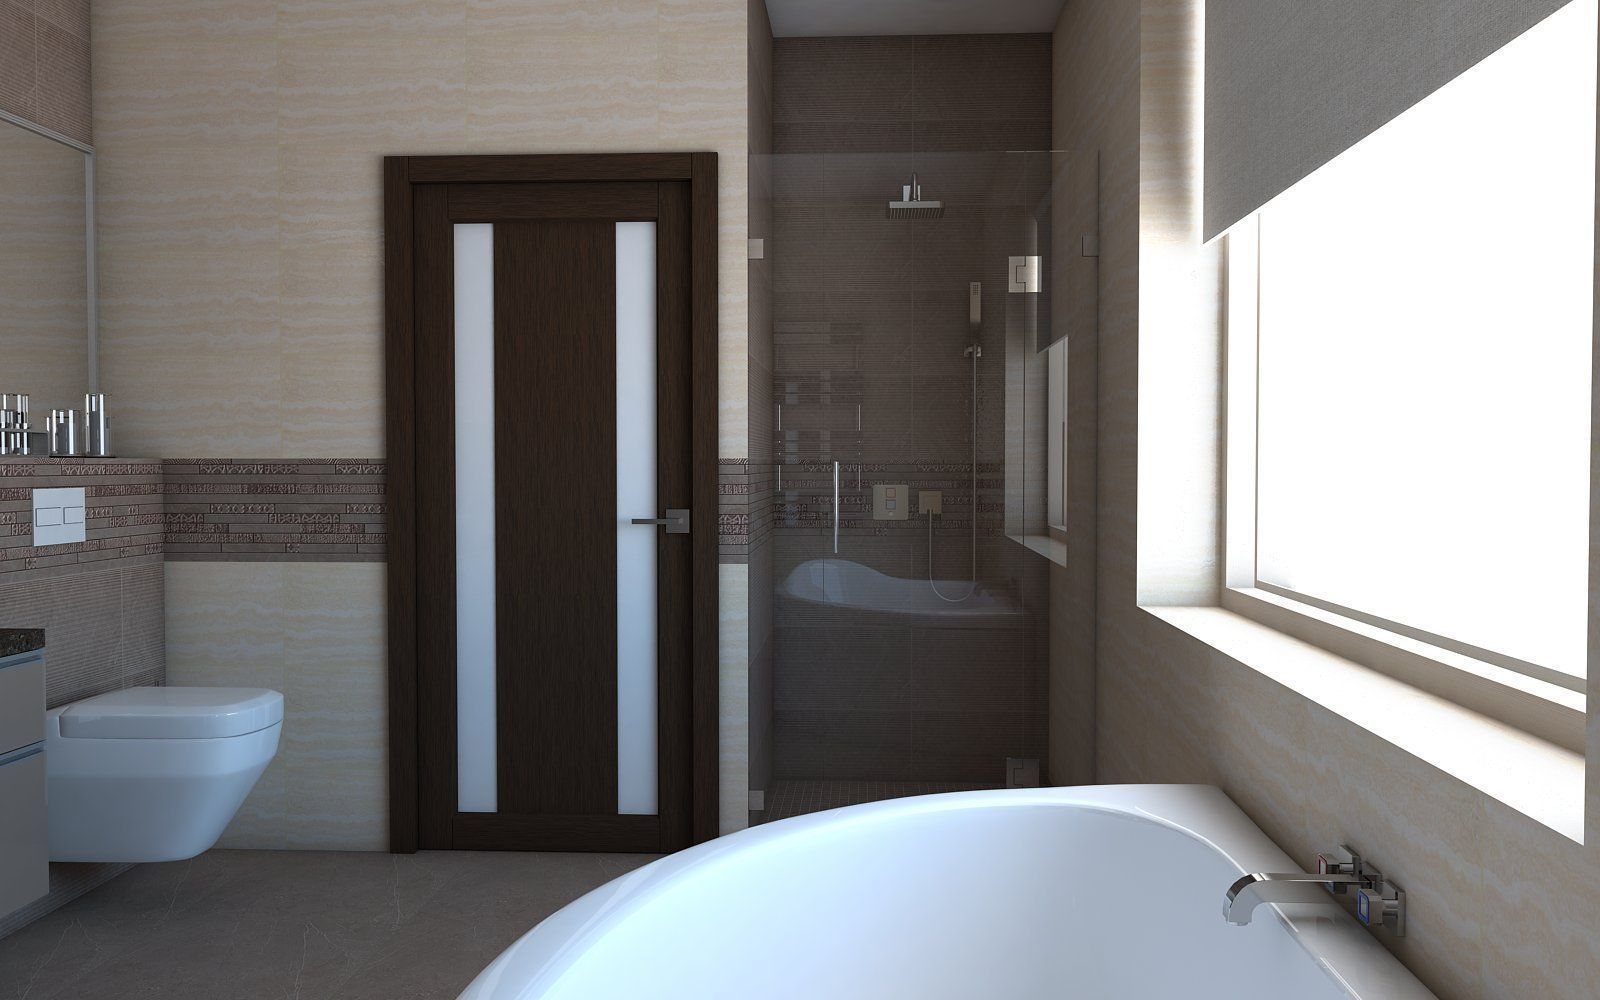 Bathroom 3D Model 3D Model Bath Architectural Bathroom  Cgtrader